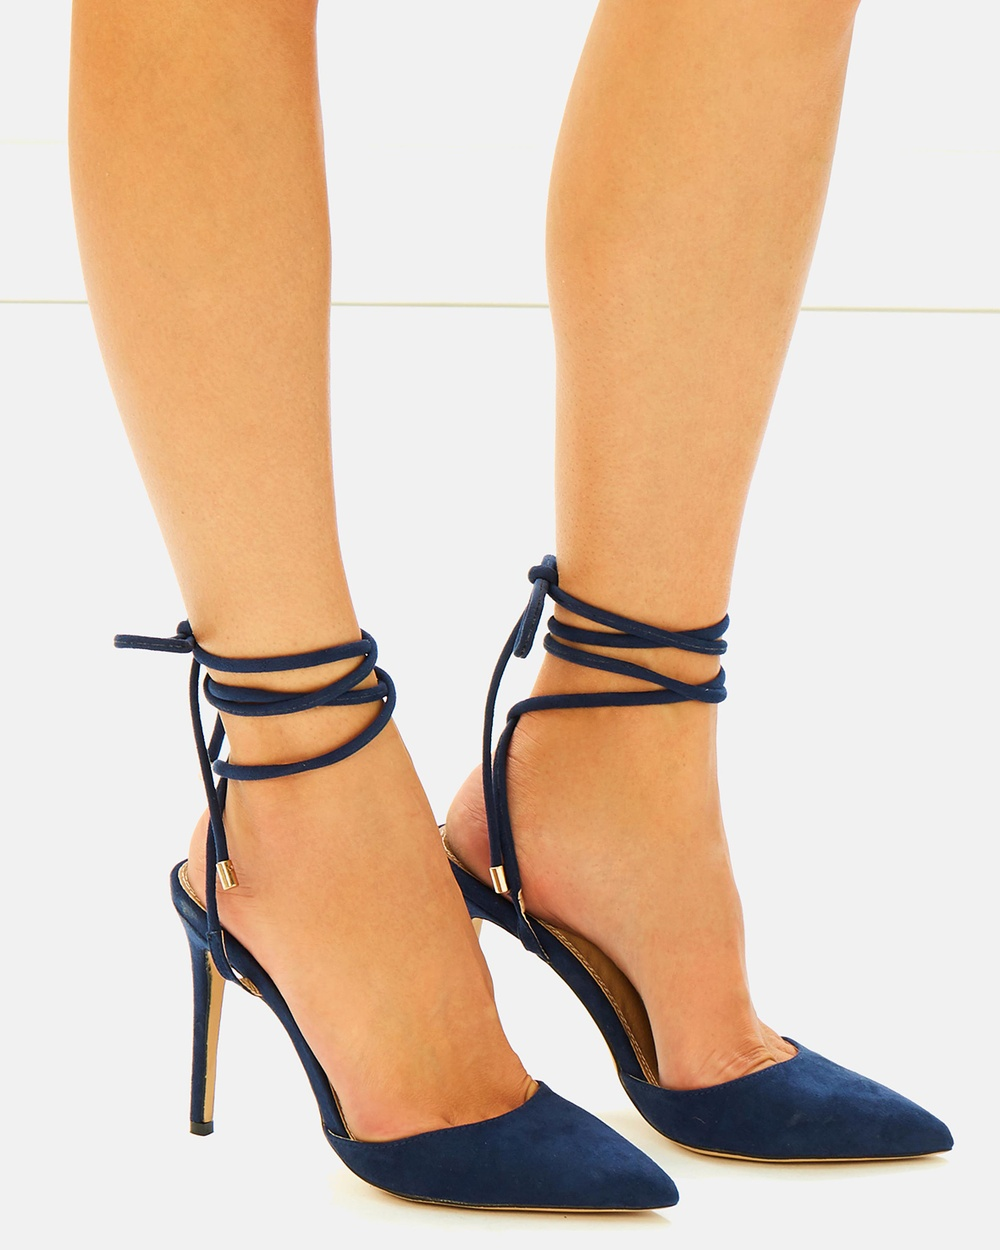 SPURR ICONIC EXCLUSIVE Kiralee Lace Up Heels Heels Navy ICONIC EXCLUSIVE Kiralee Lace Up Heels